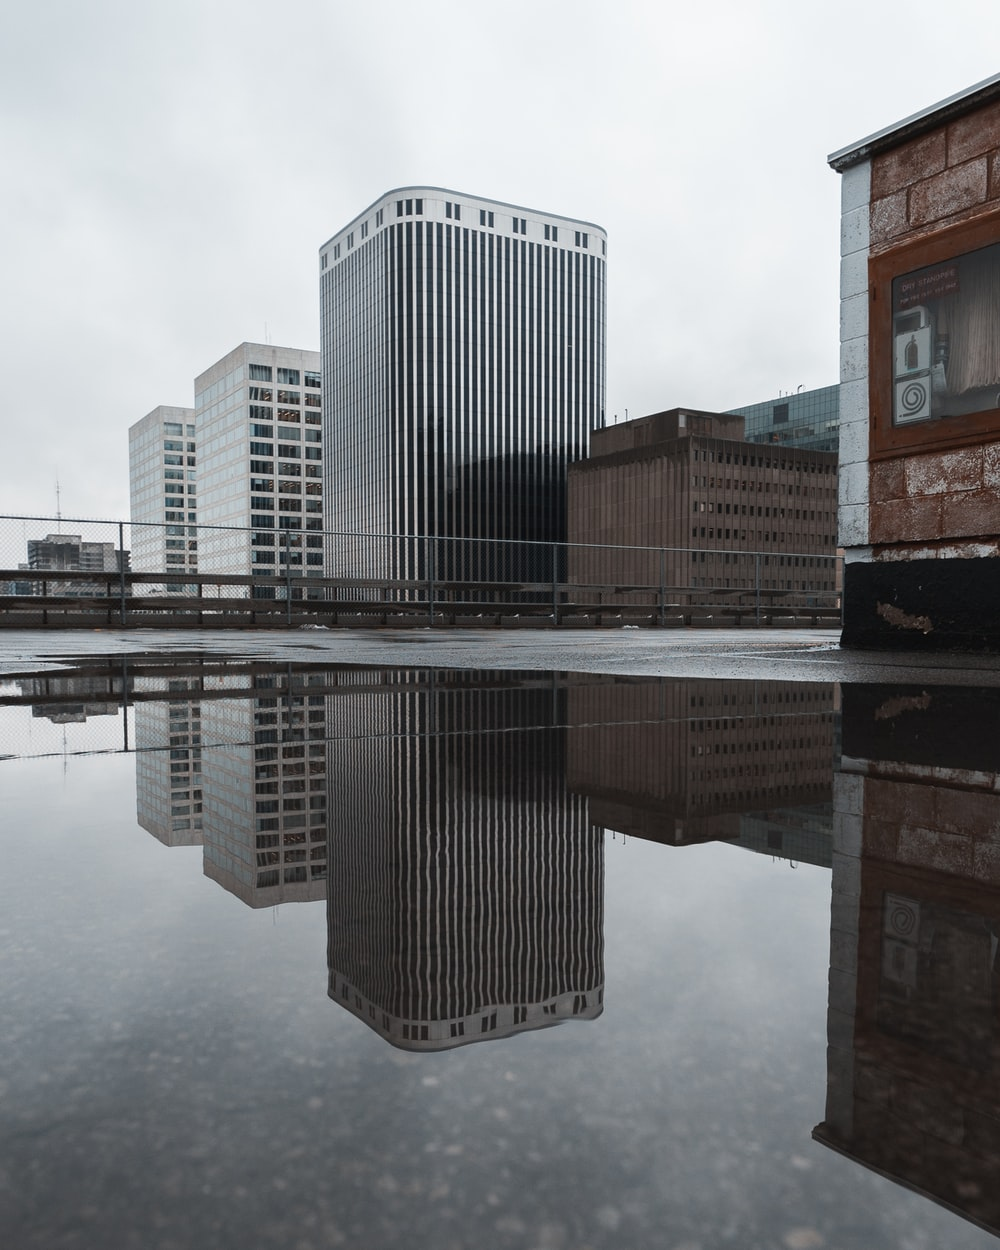 worm's eyeview of buildings